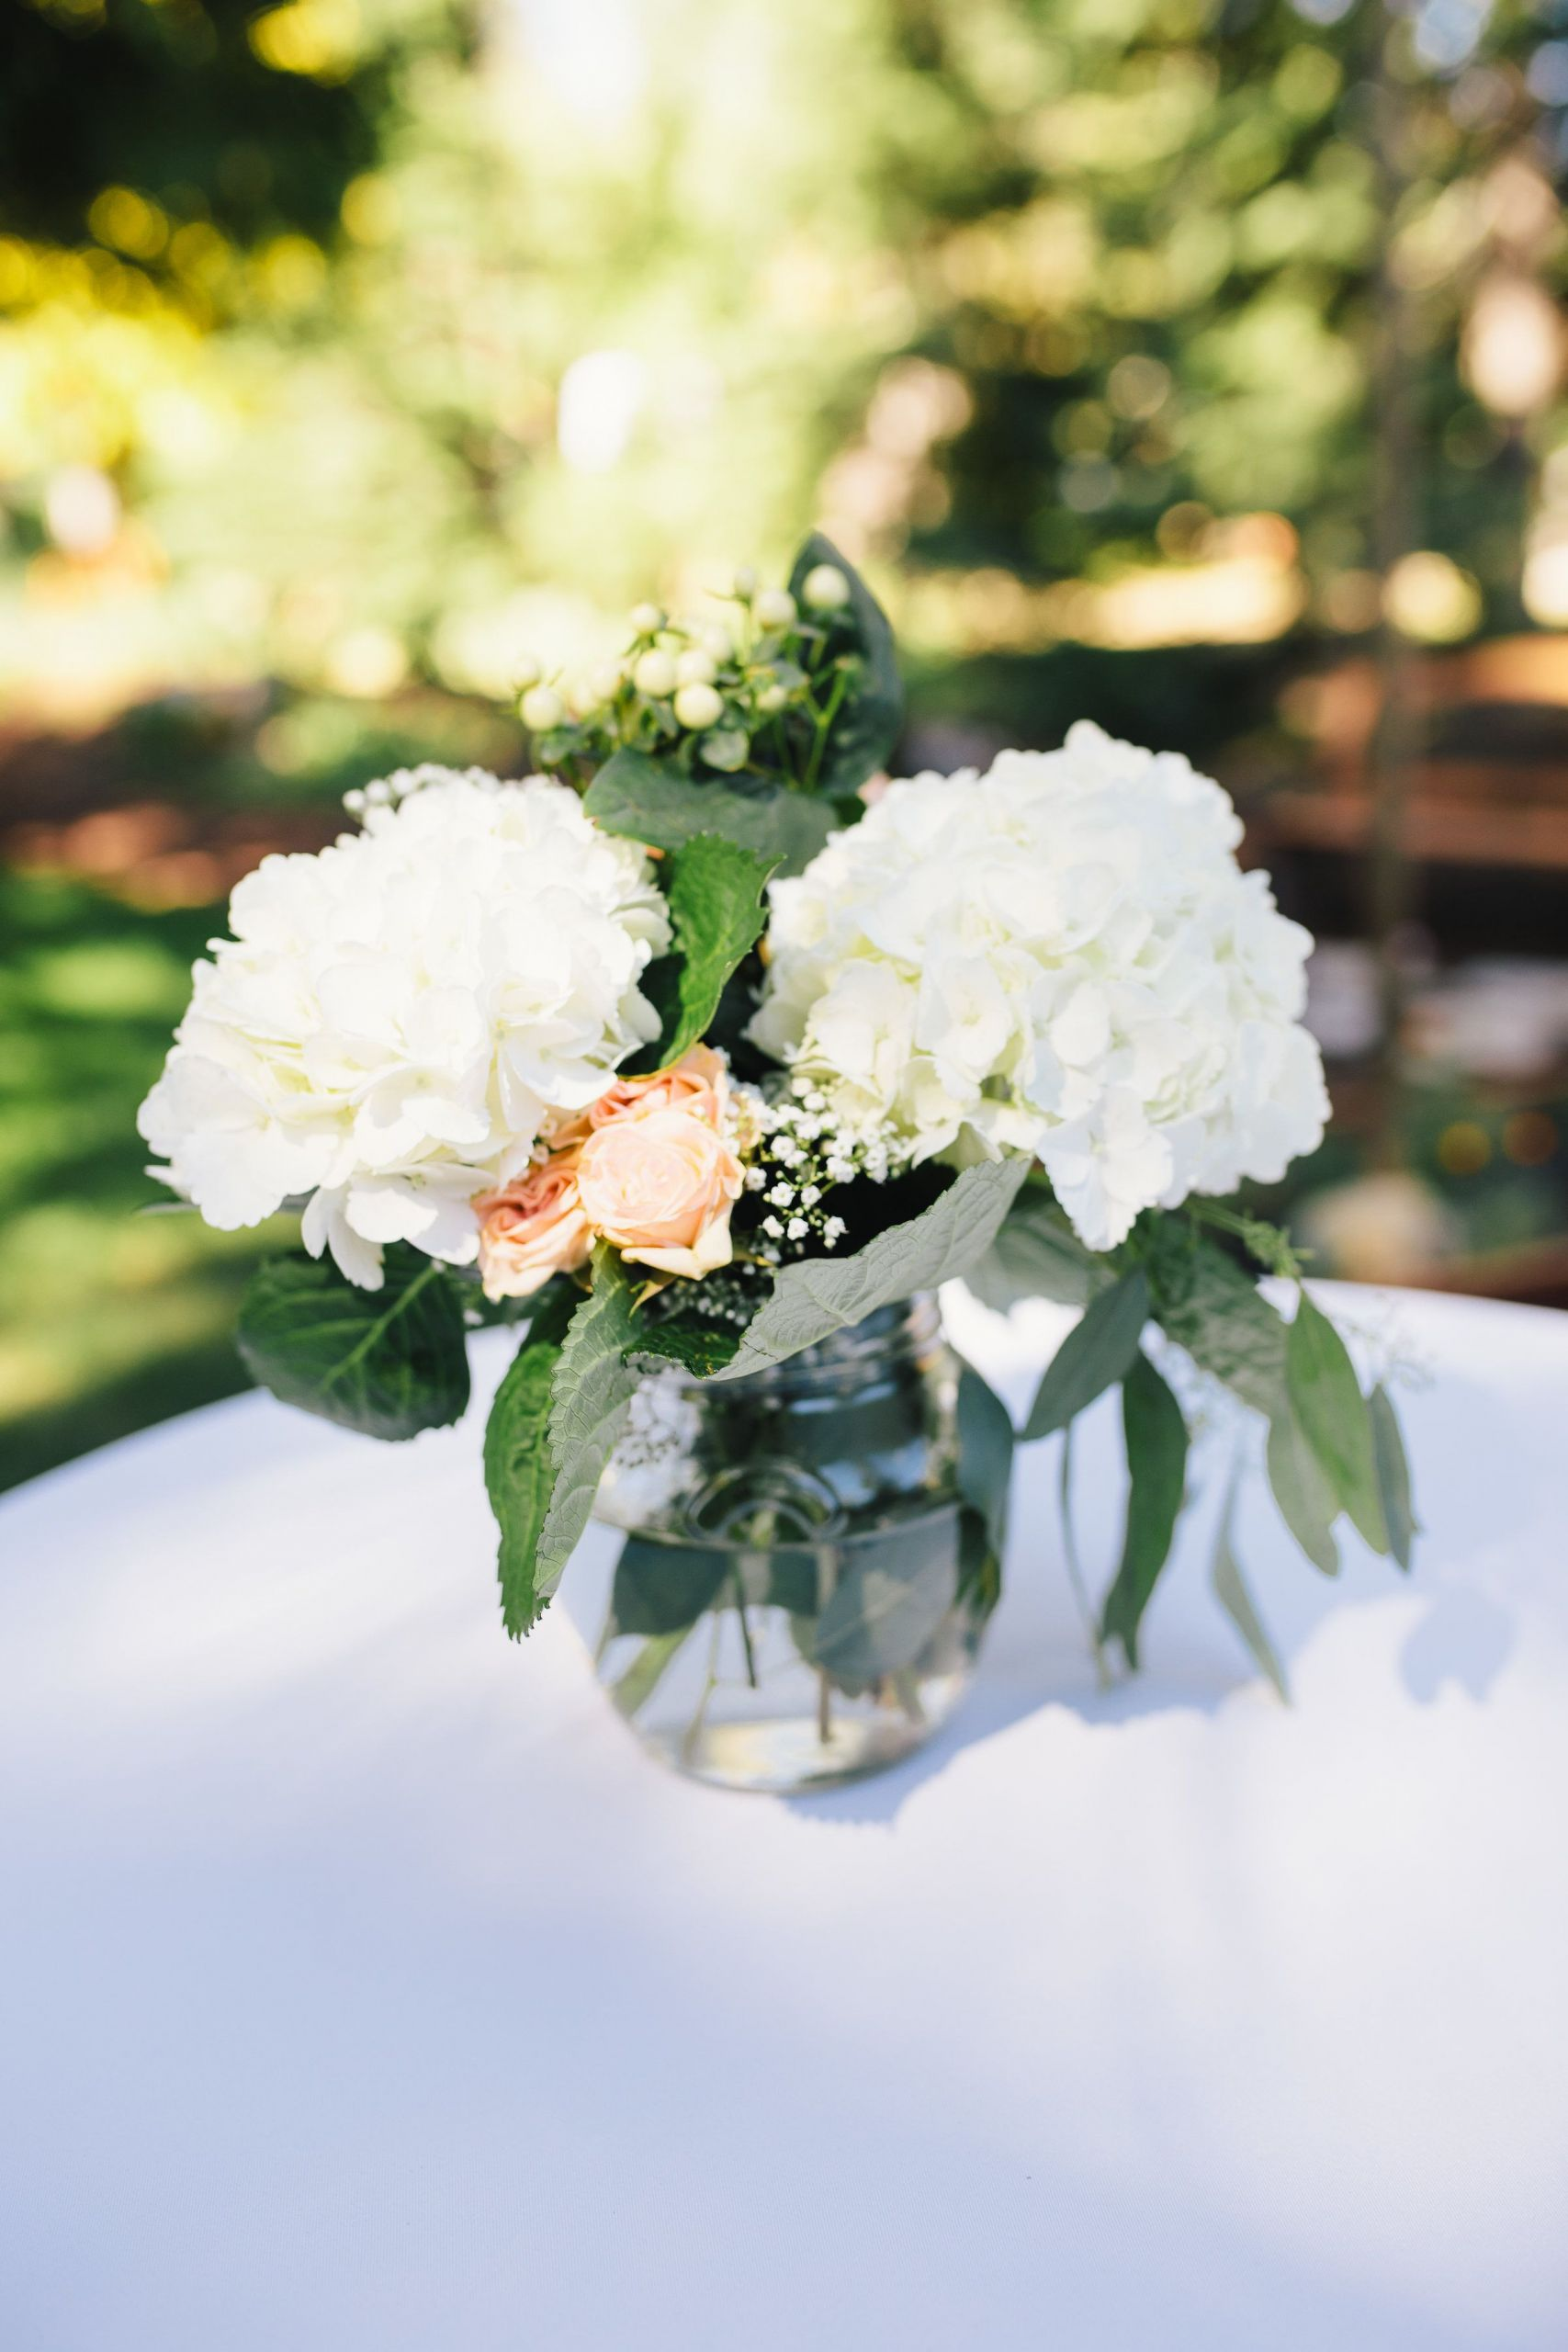 How To Save On Wedding Flowers  Learn How to Save on Wedding Flowers with These 15